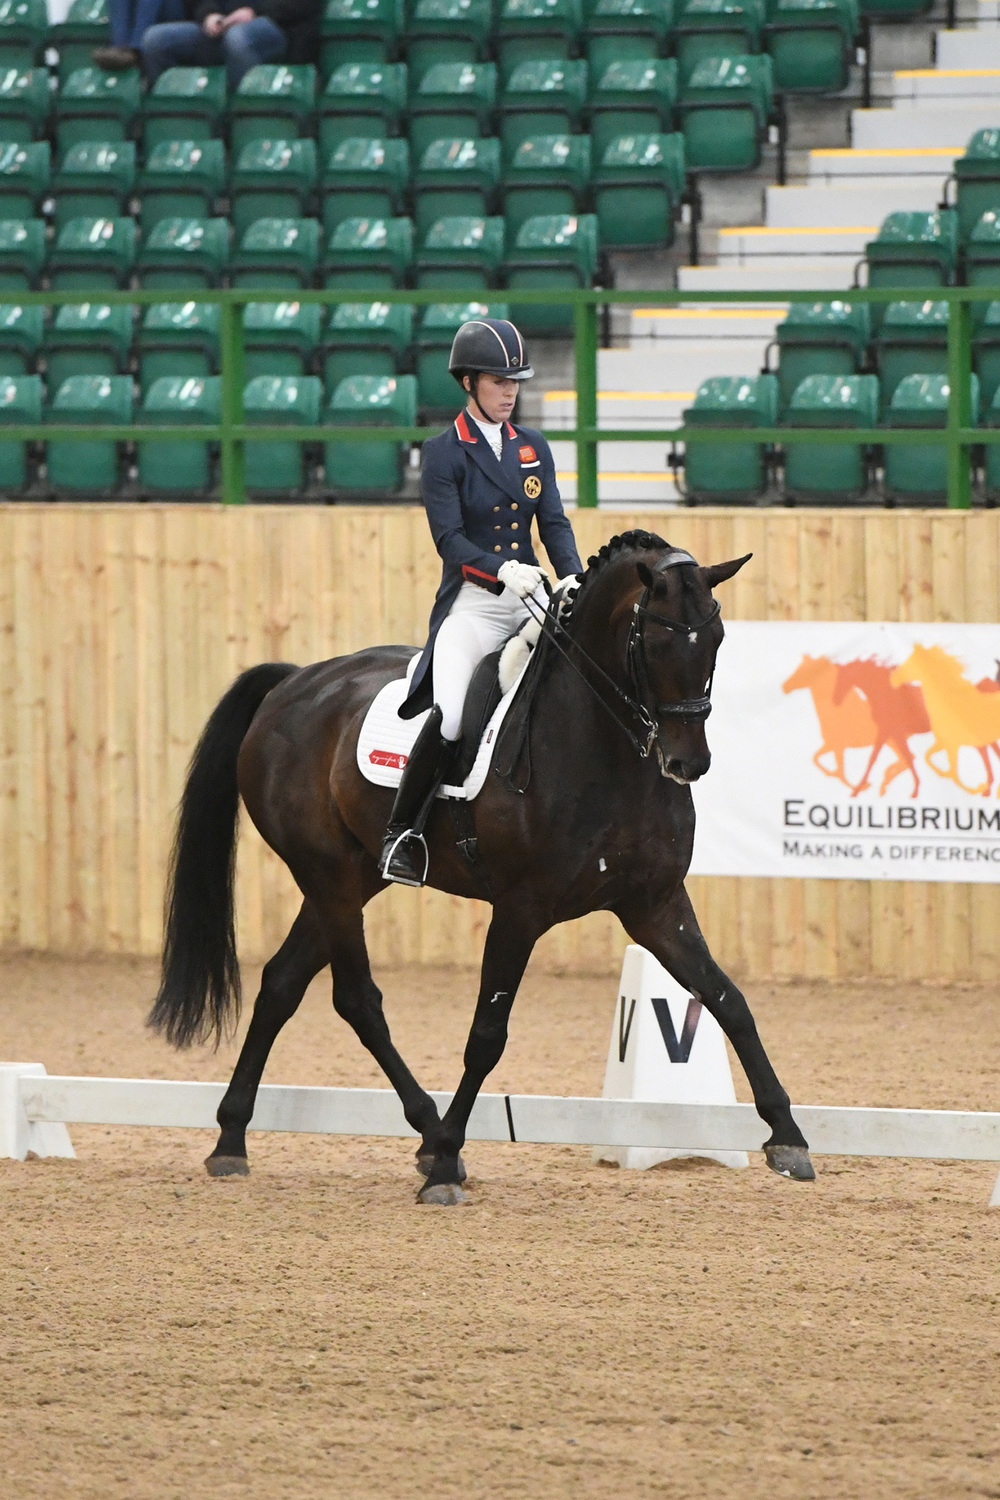 Charlotte Dujardin riding Hawkins Delicate wins the Young Horse Prix St George Qualifier